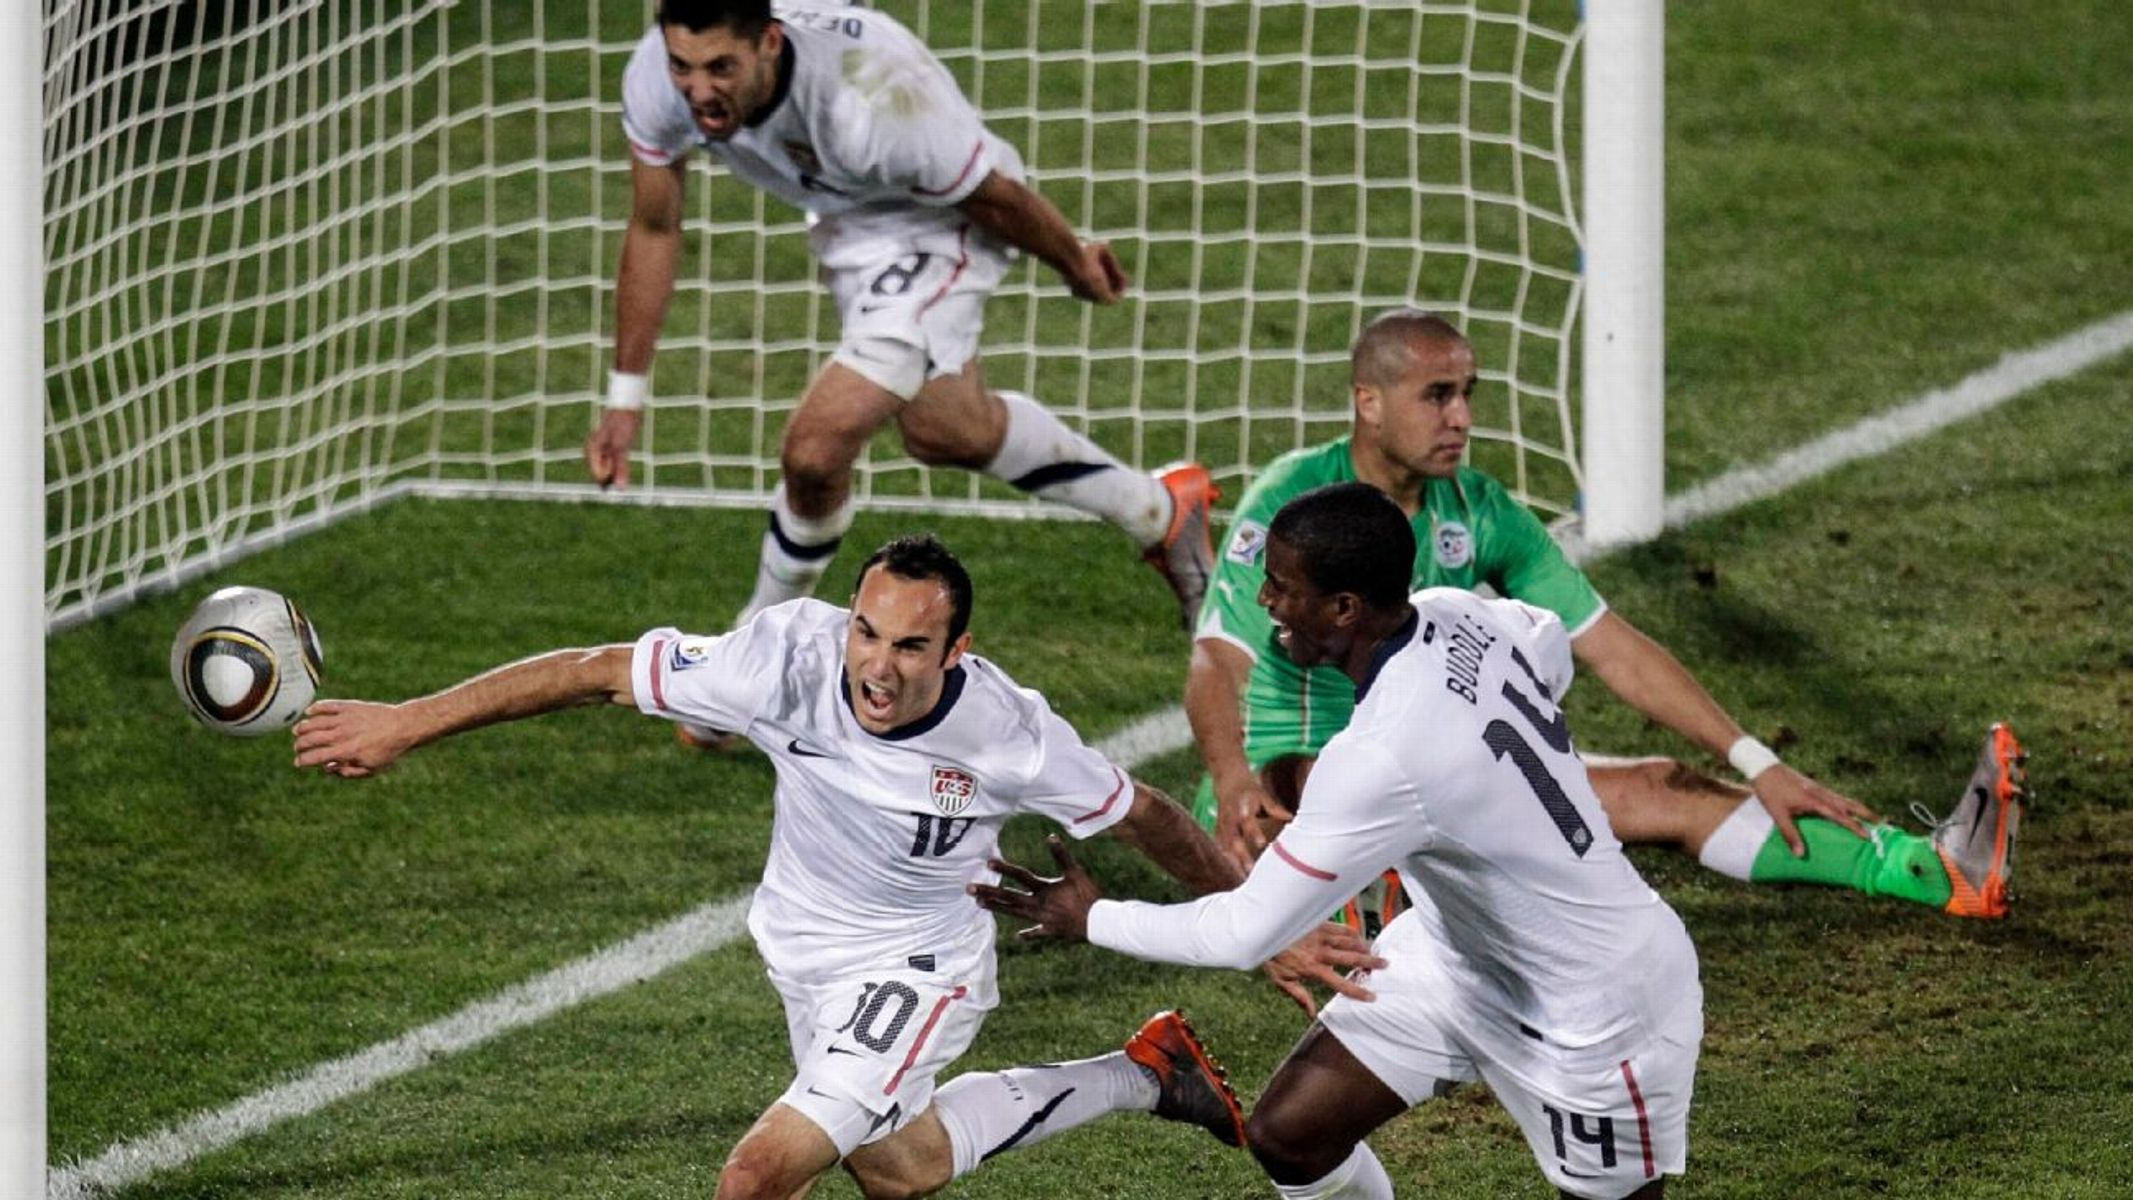 I was there: Donovans late World Cup heroics